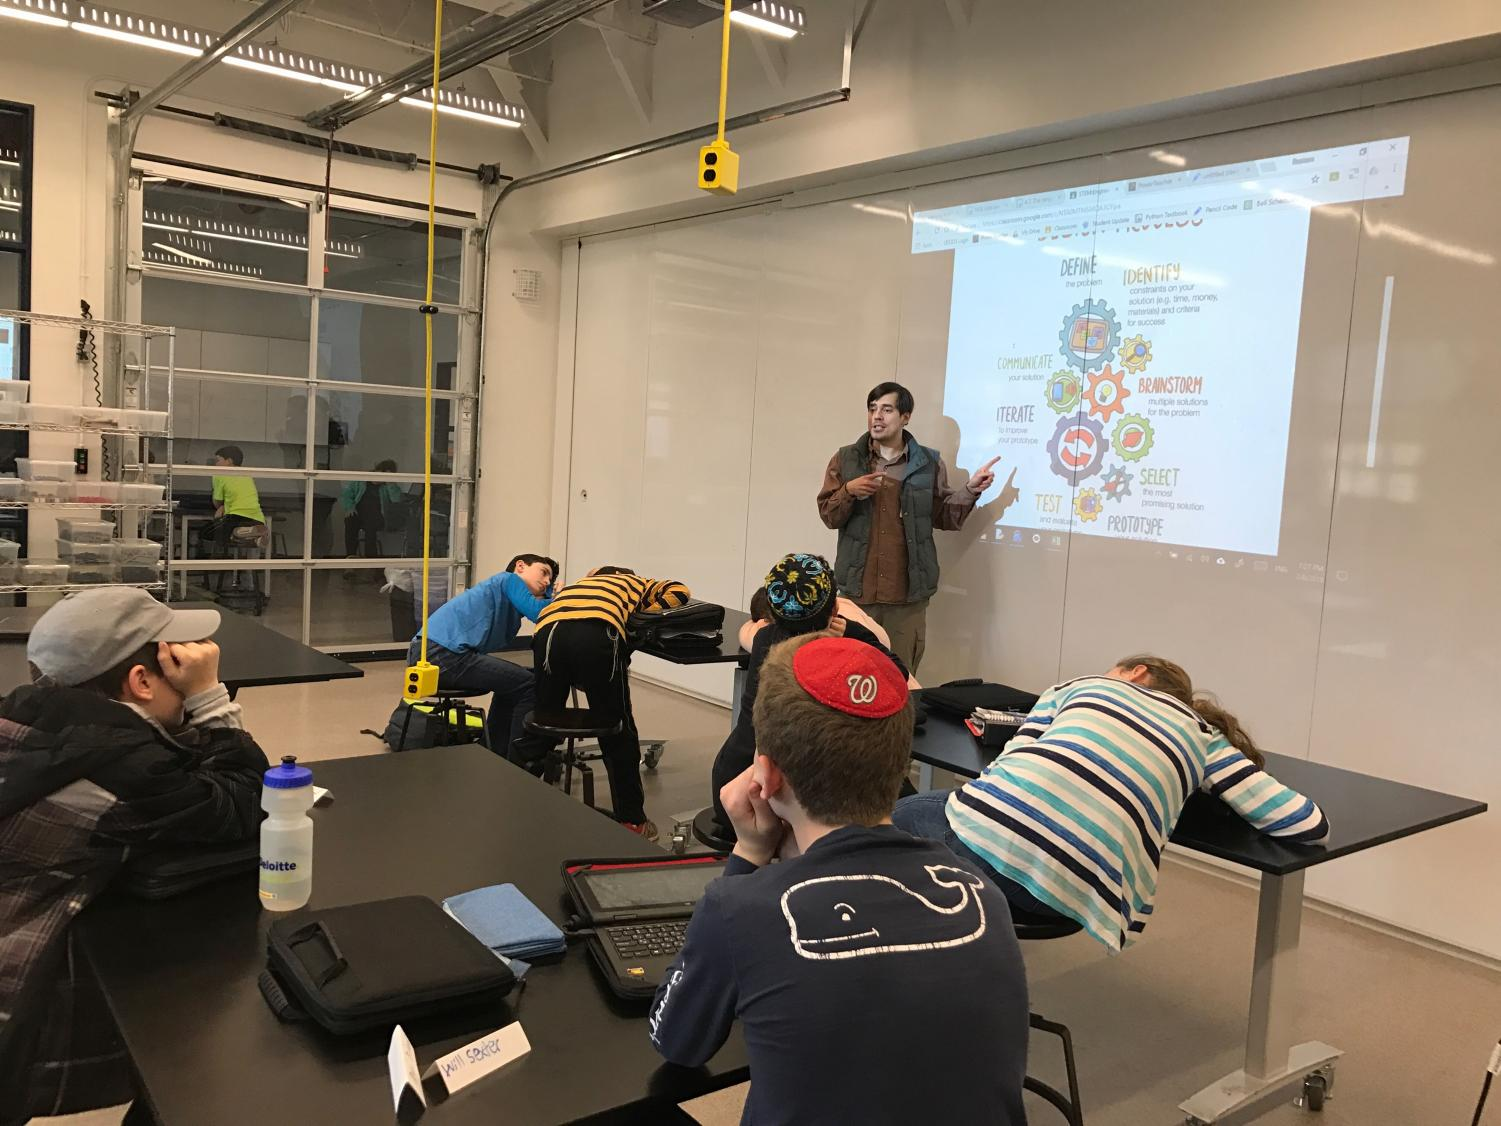 Meyer introduces a new project for middle school students who are taking coding this semester; the project involves following a list of procedures that are projected on the board.